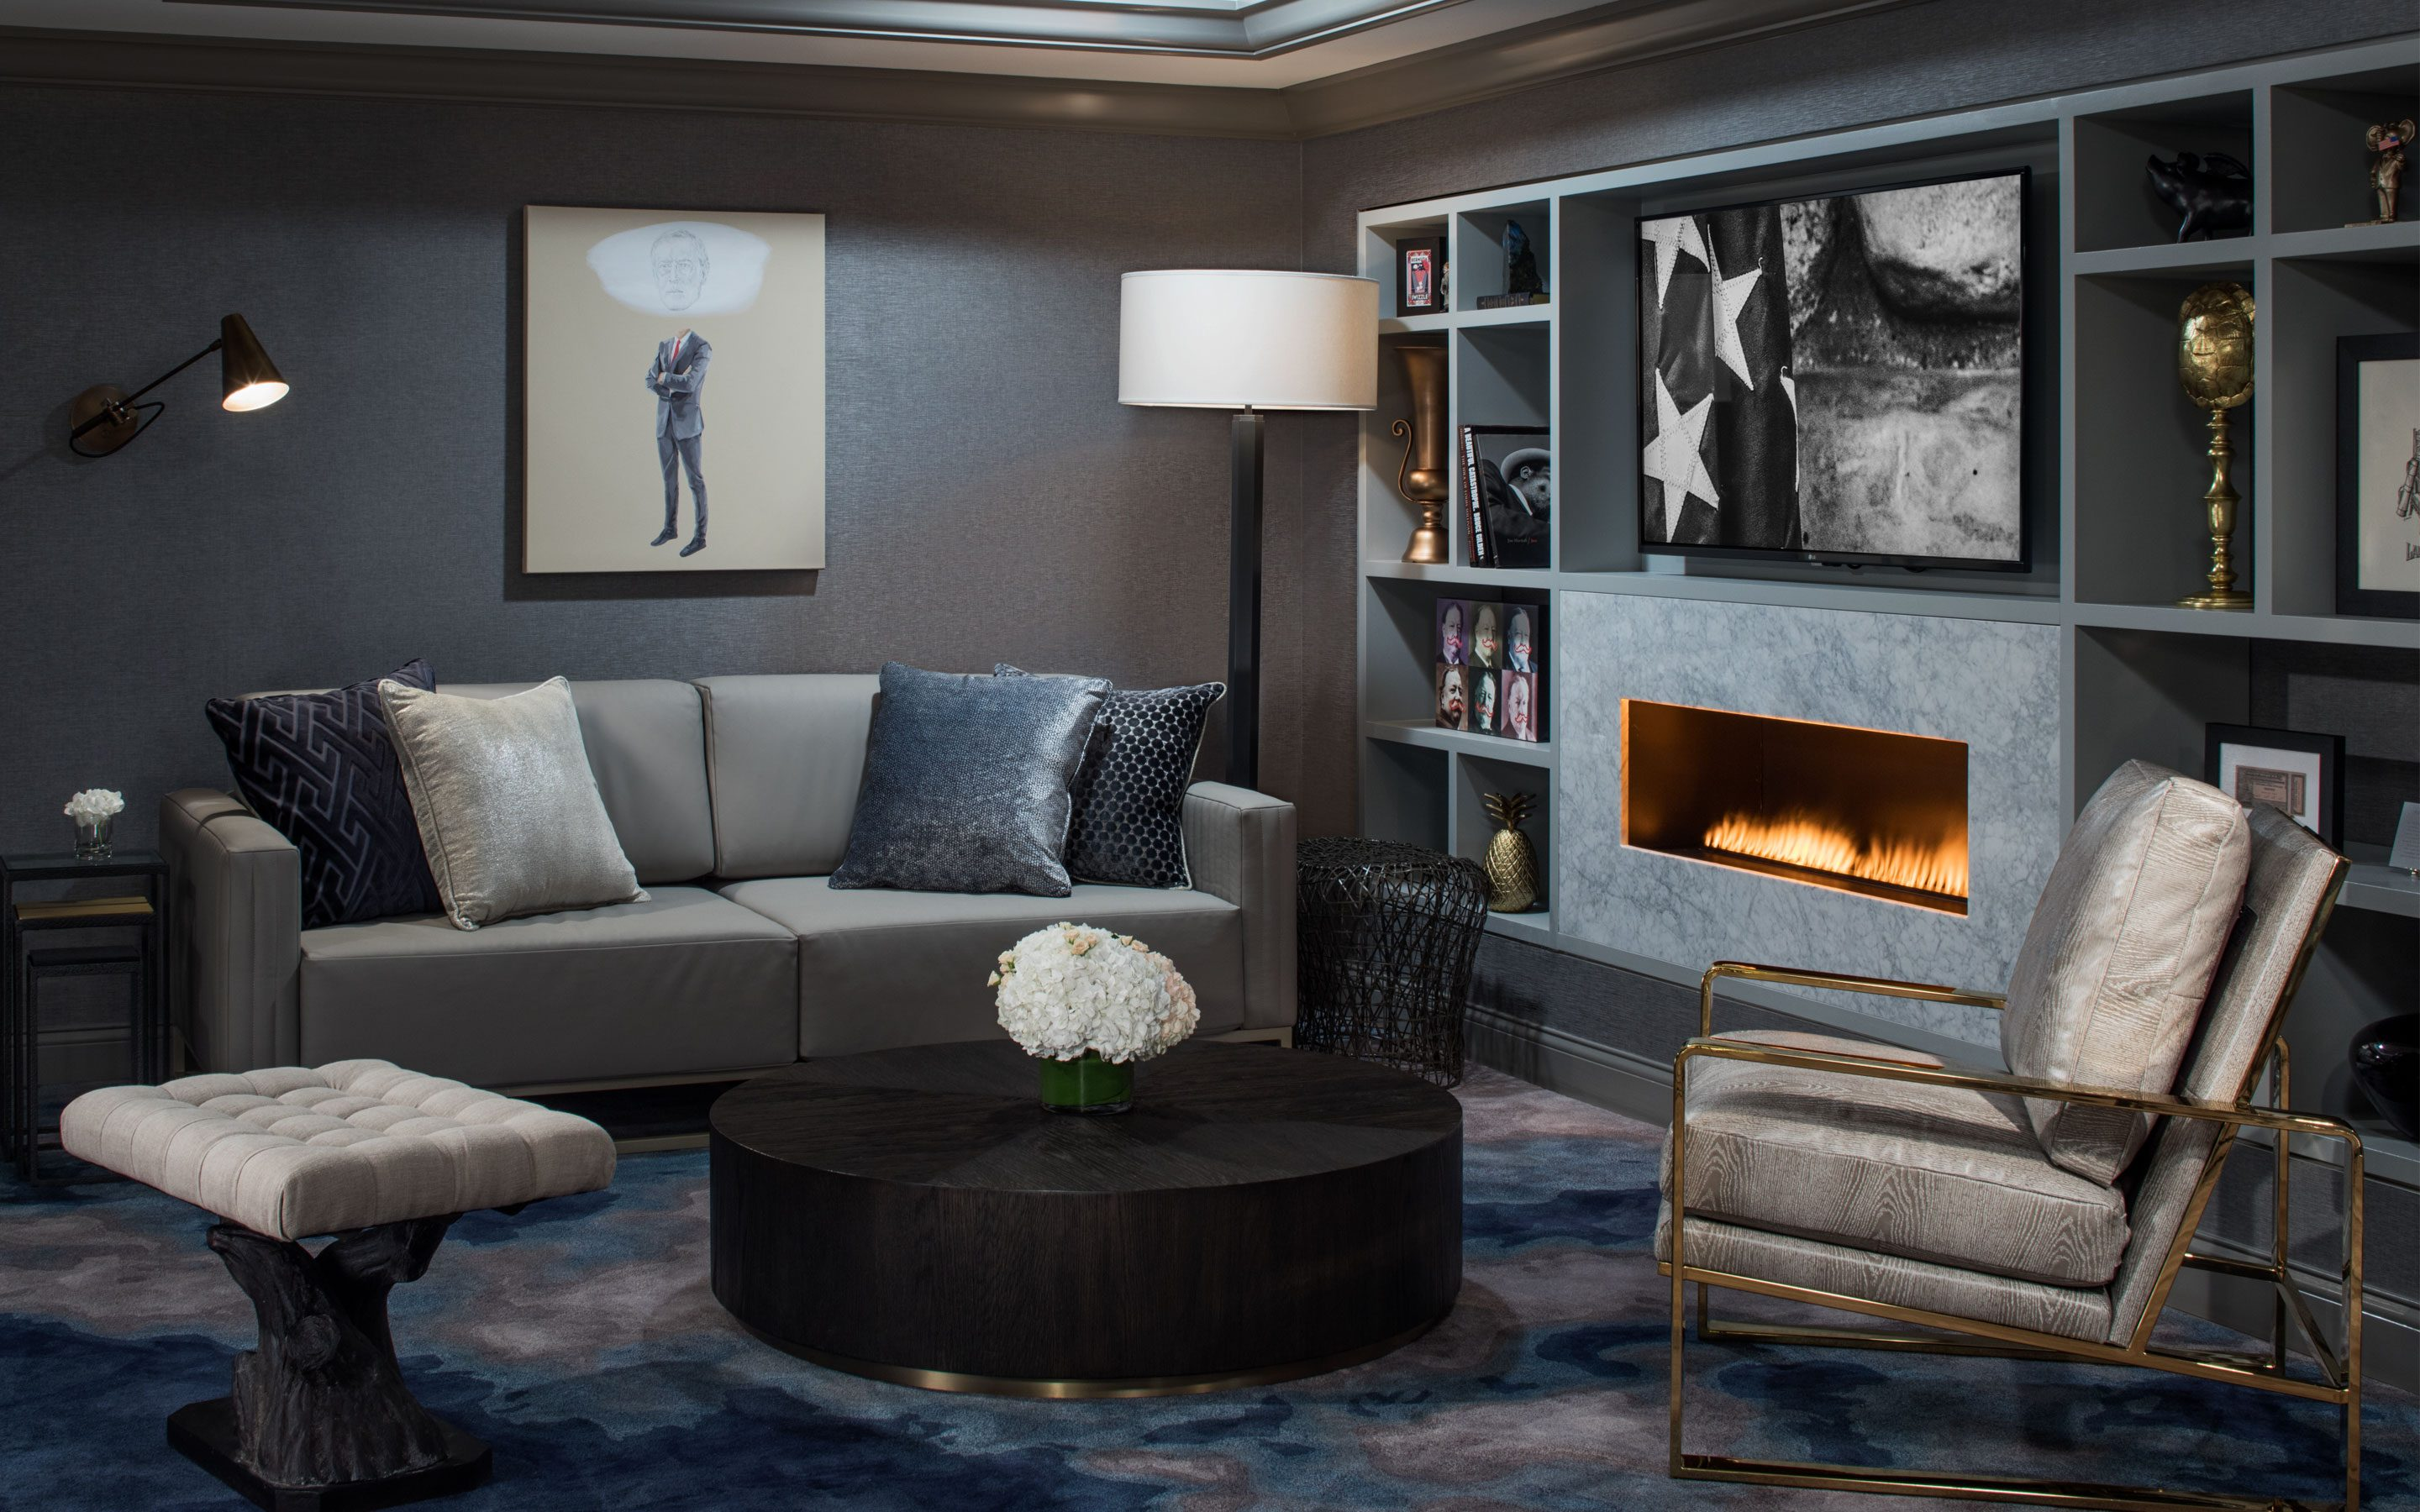 Gray Interior Design Hotel Design And Development Firm The Gettys Group